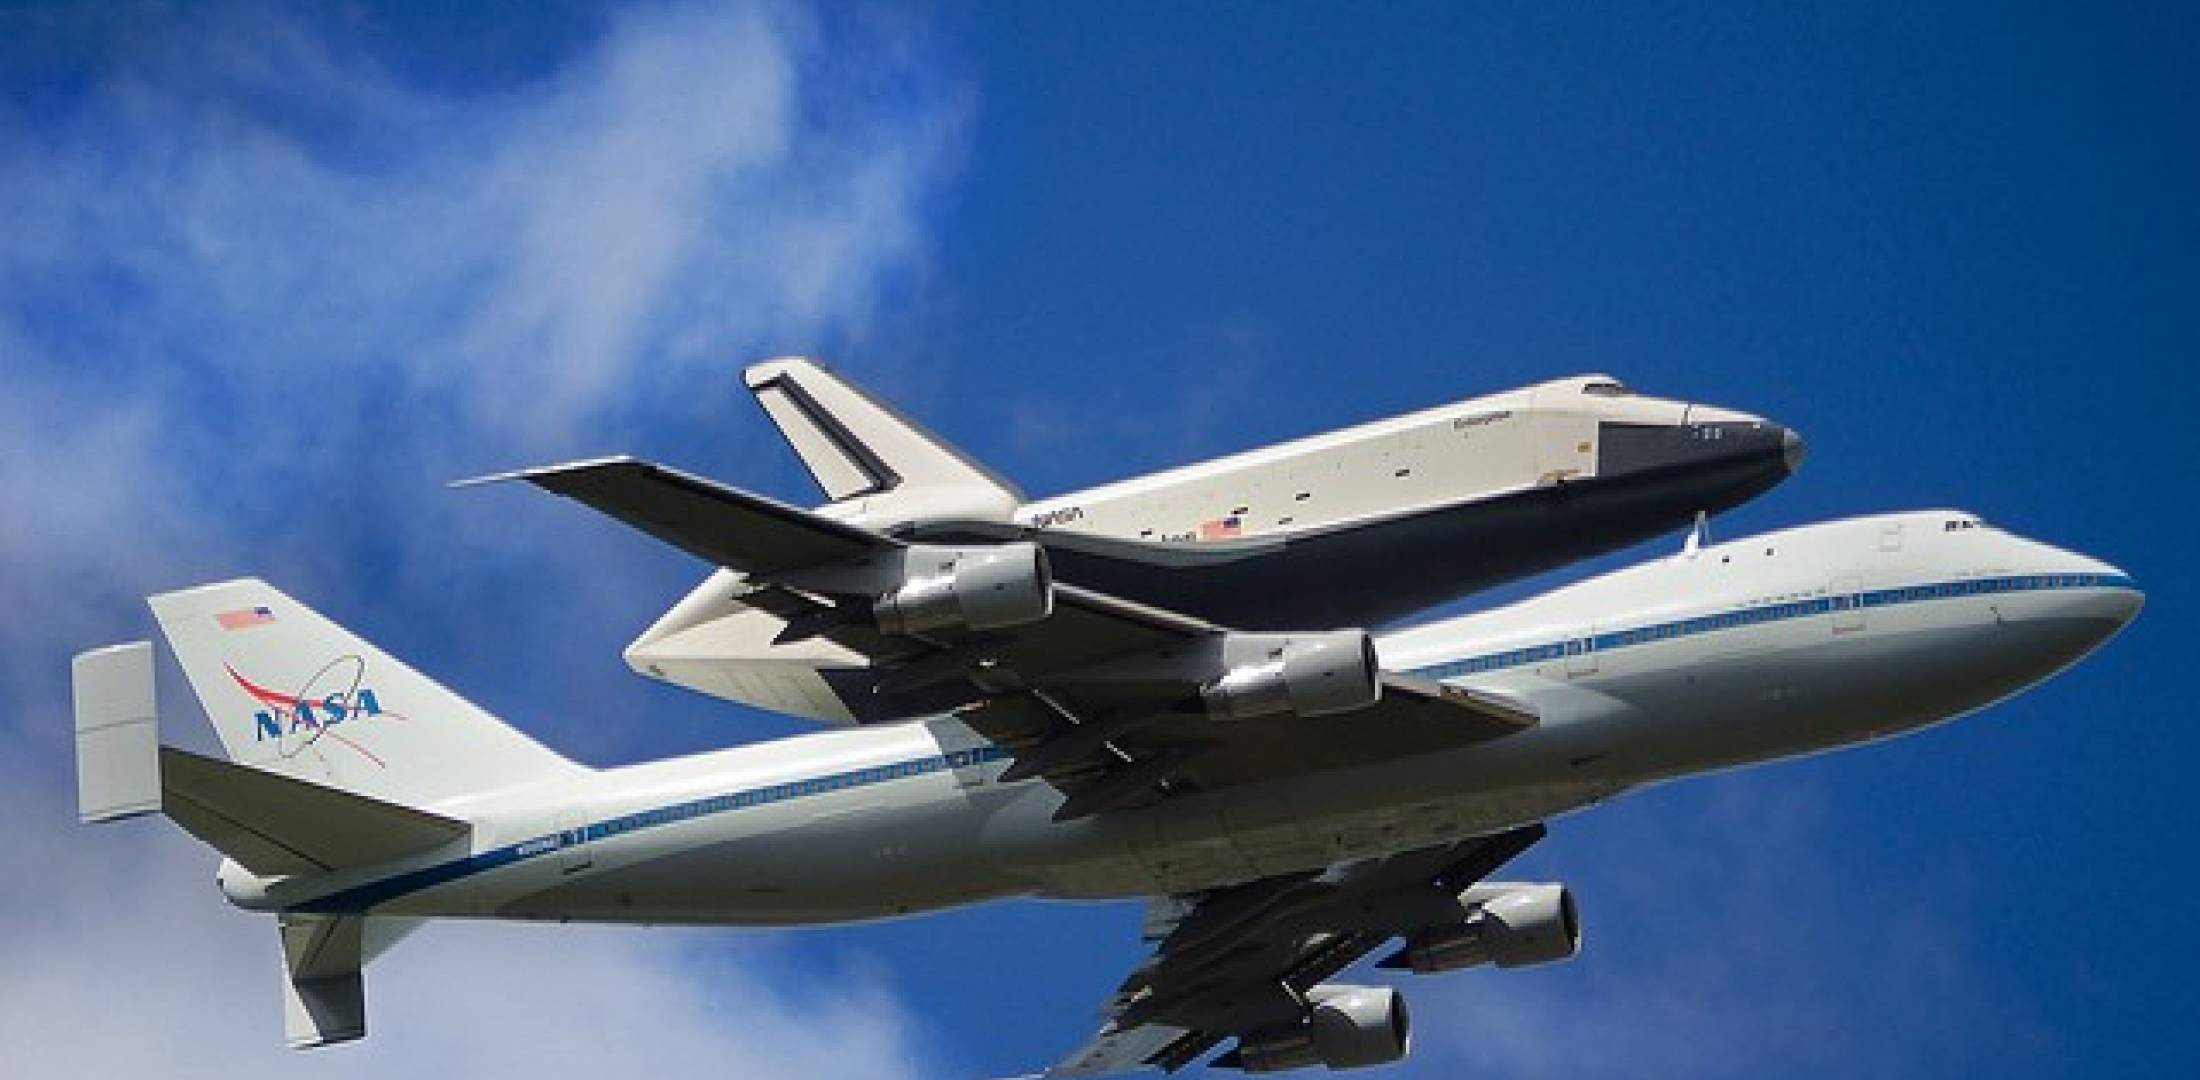 Enterprise on back of NASA shuttle carrier 747